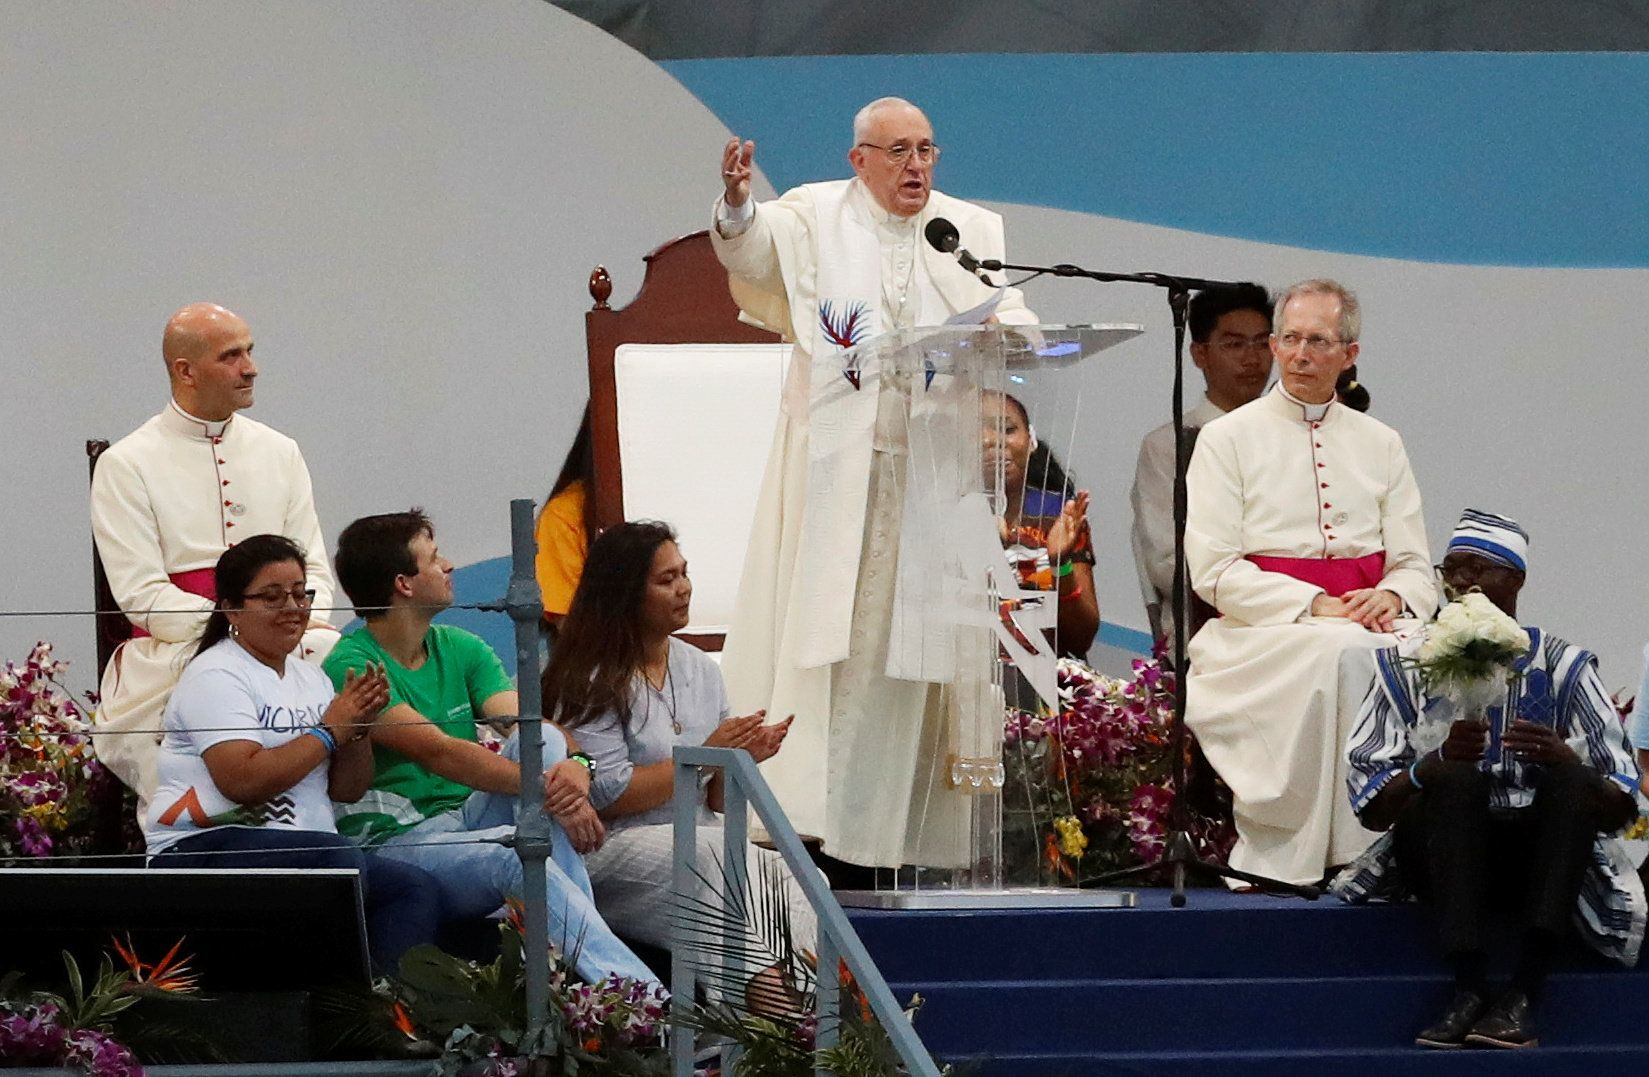 Pope Francis speaks during the opening ceremony for World Youth Day.